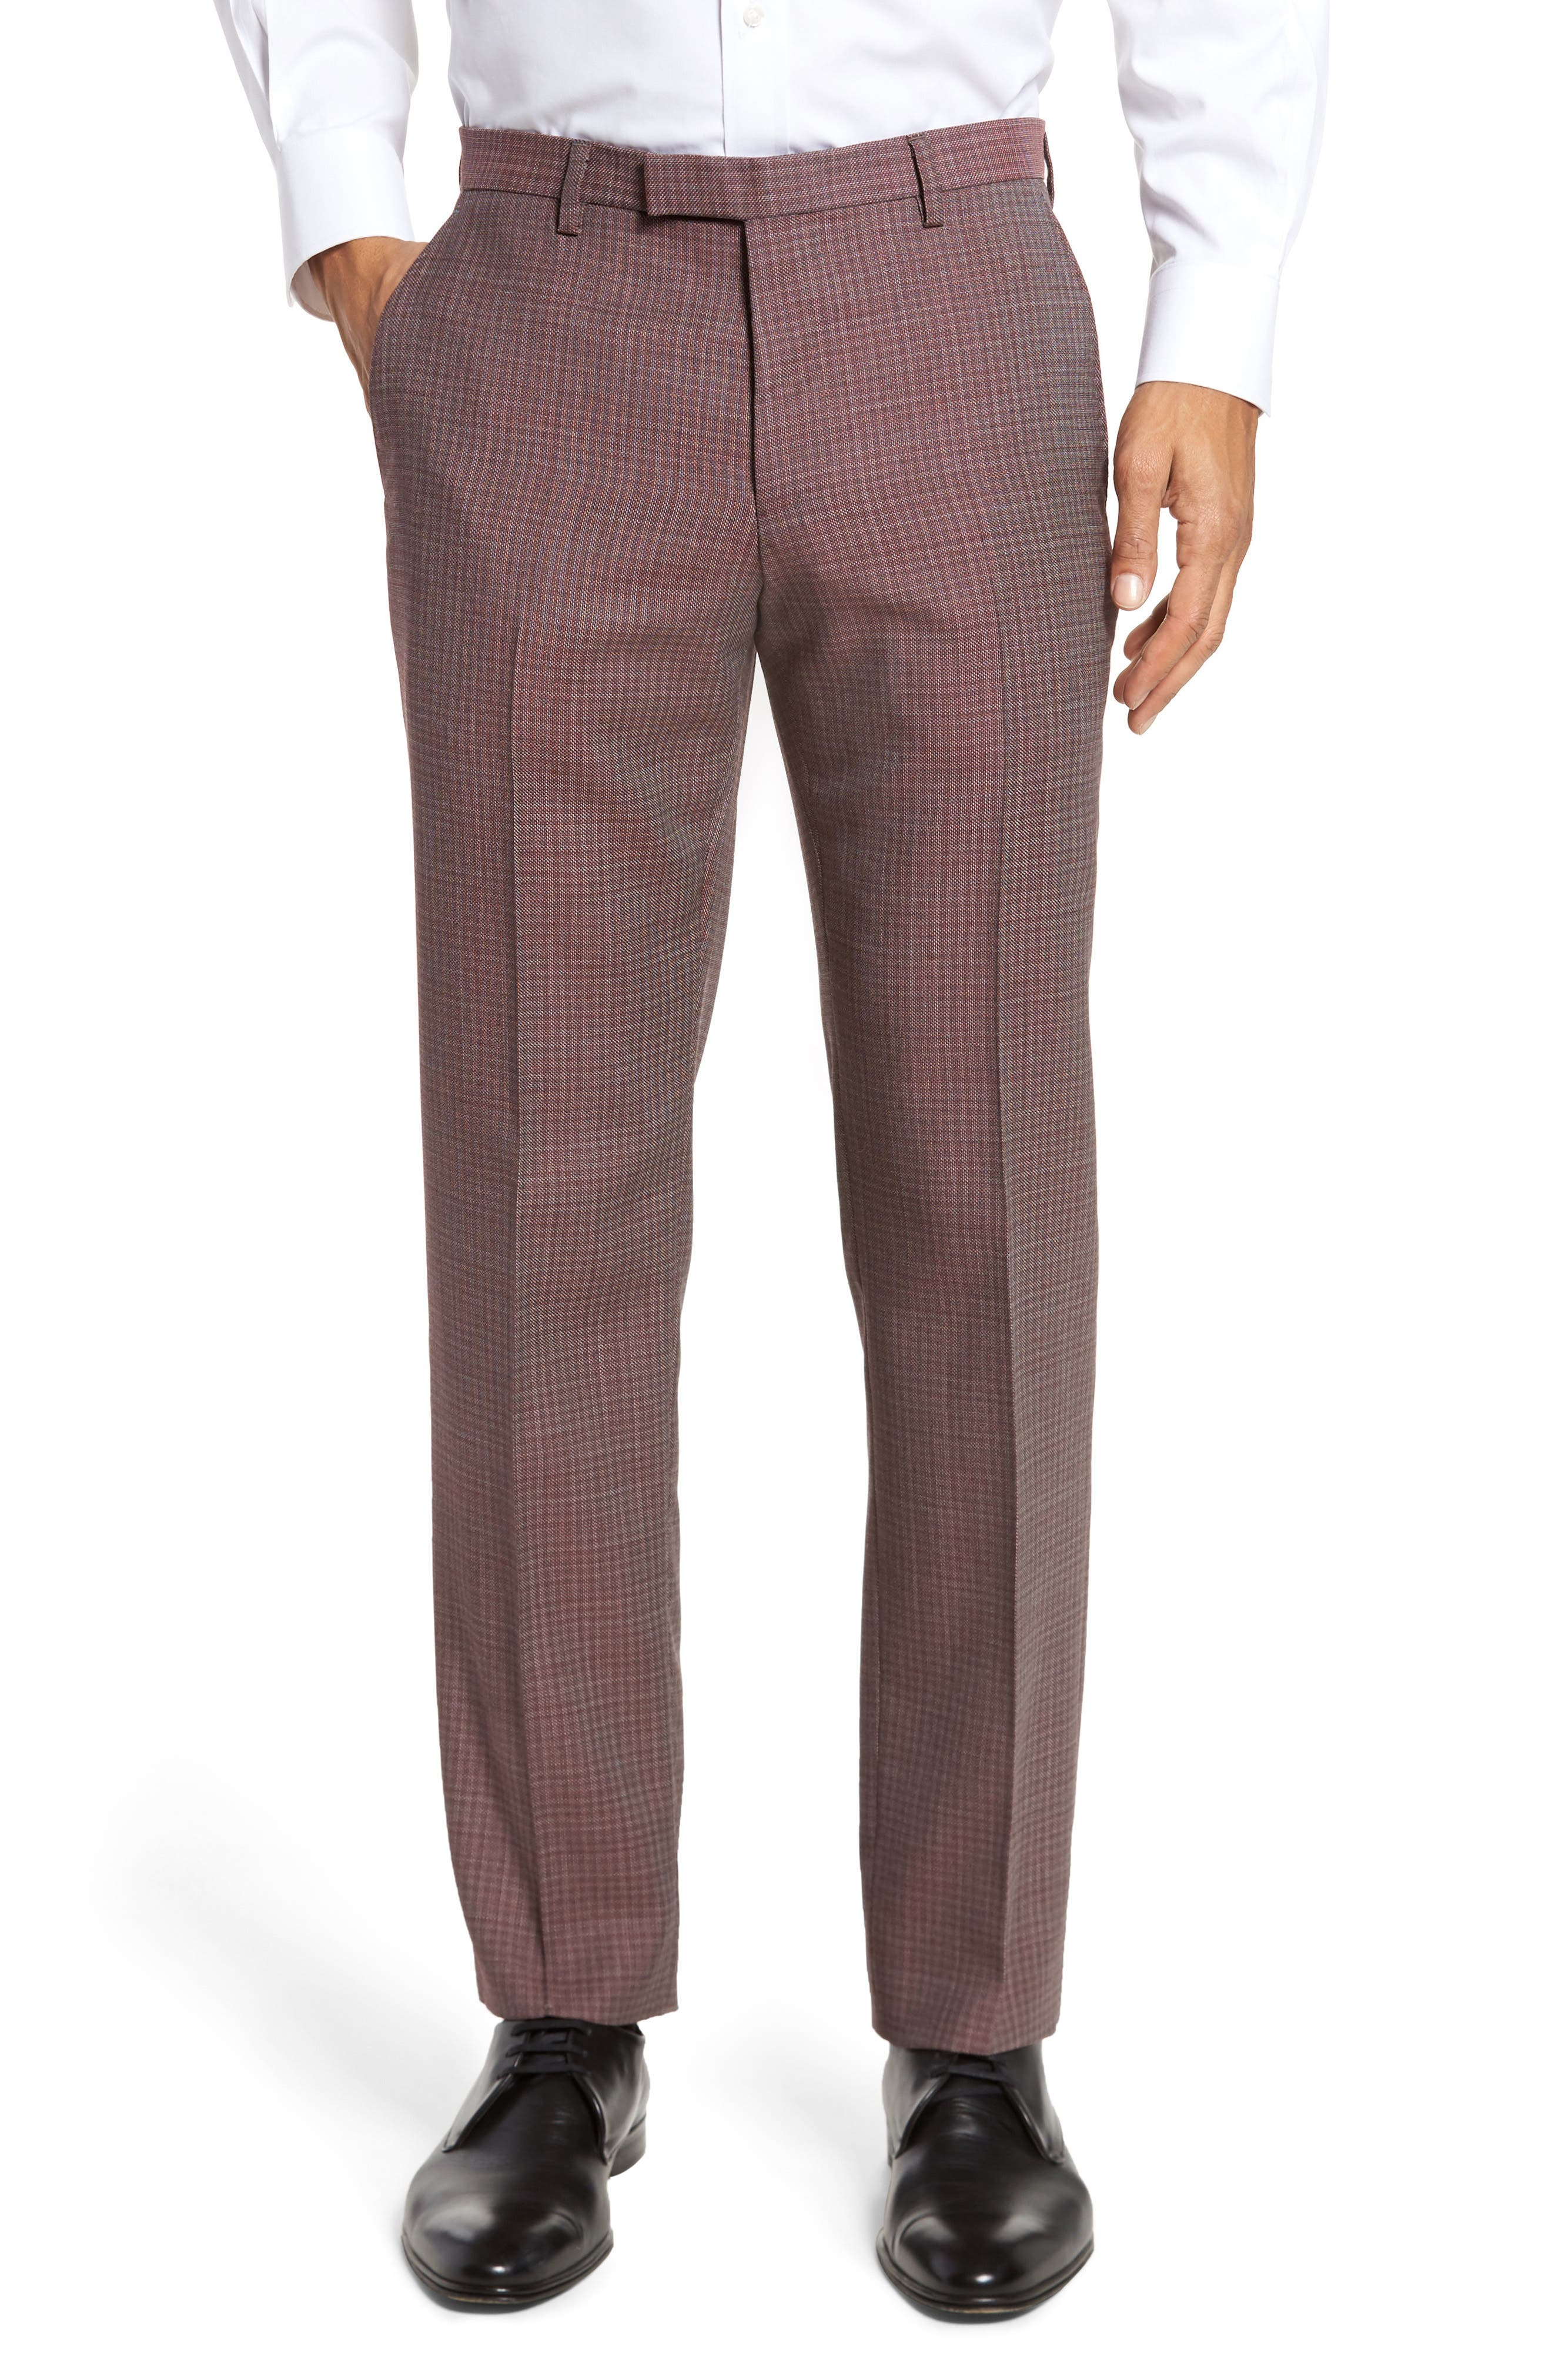 Leenon Flat Front Regular Fit Check Wool Trousers,                             Main thumbnail 1, color,                             Medium Red